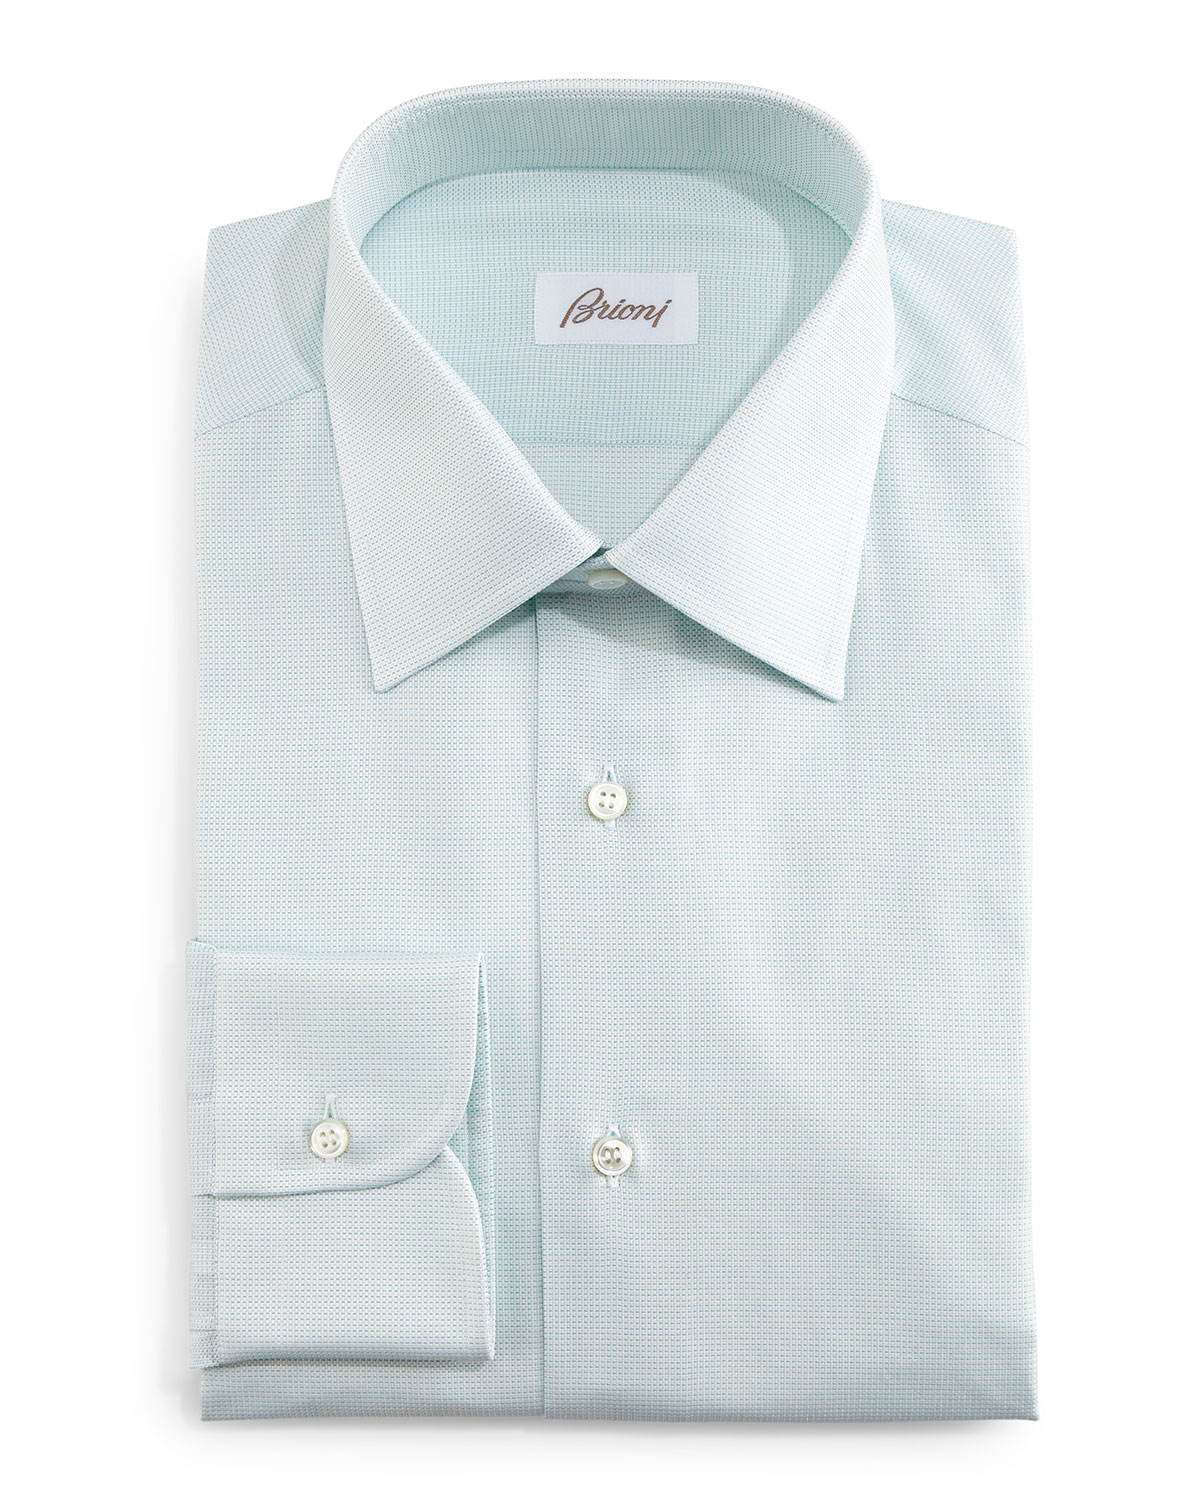 Brioni Tonal Textured Dress Shirt Mint Neiman Marcus